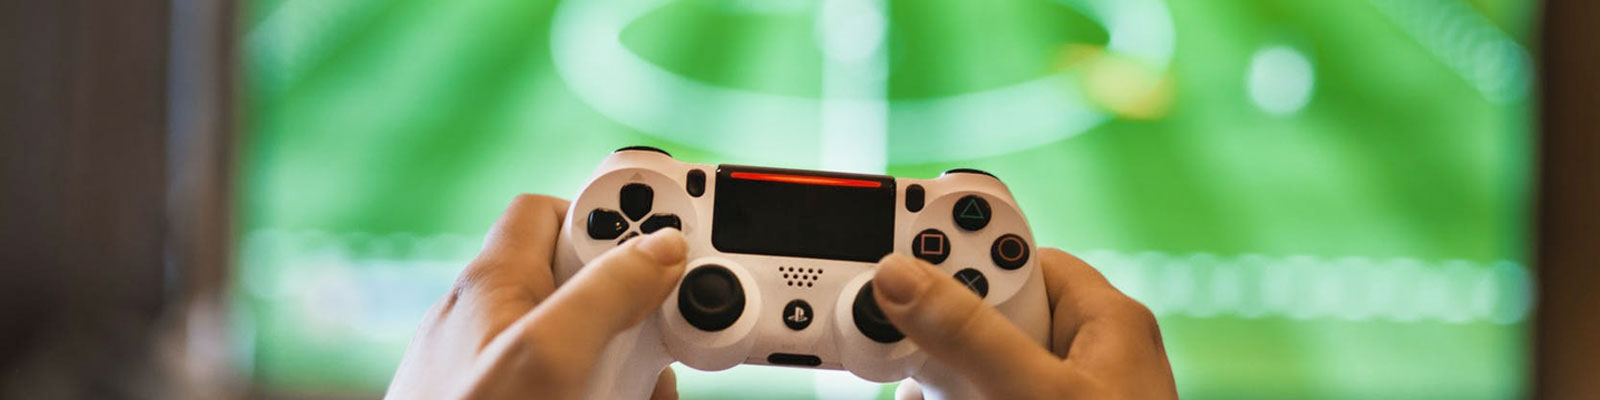 Uses For Smart Plugs On Consoles